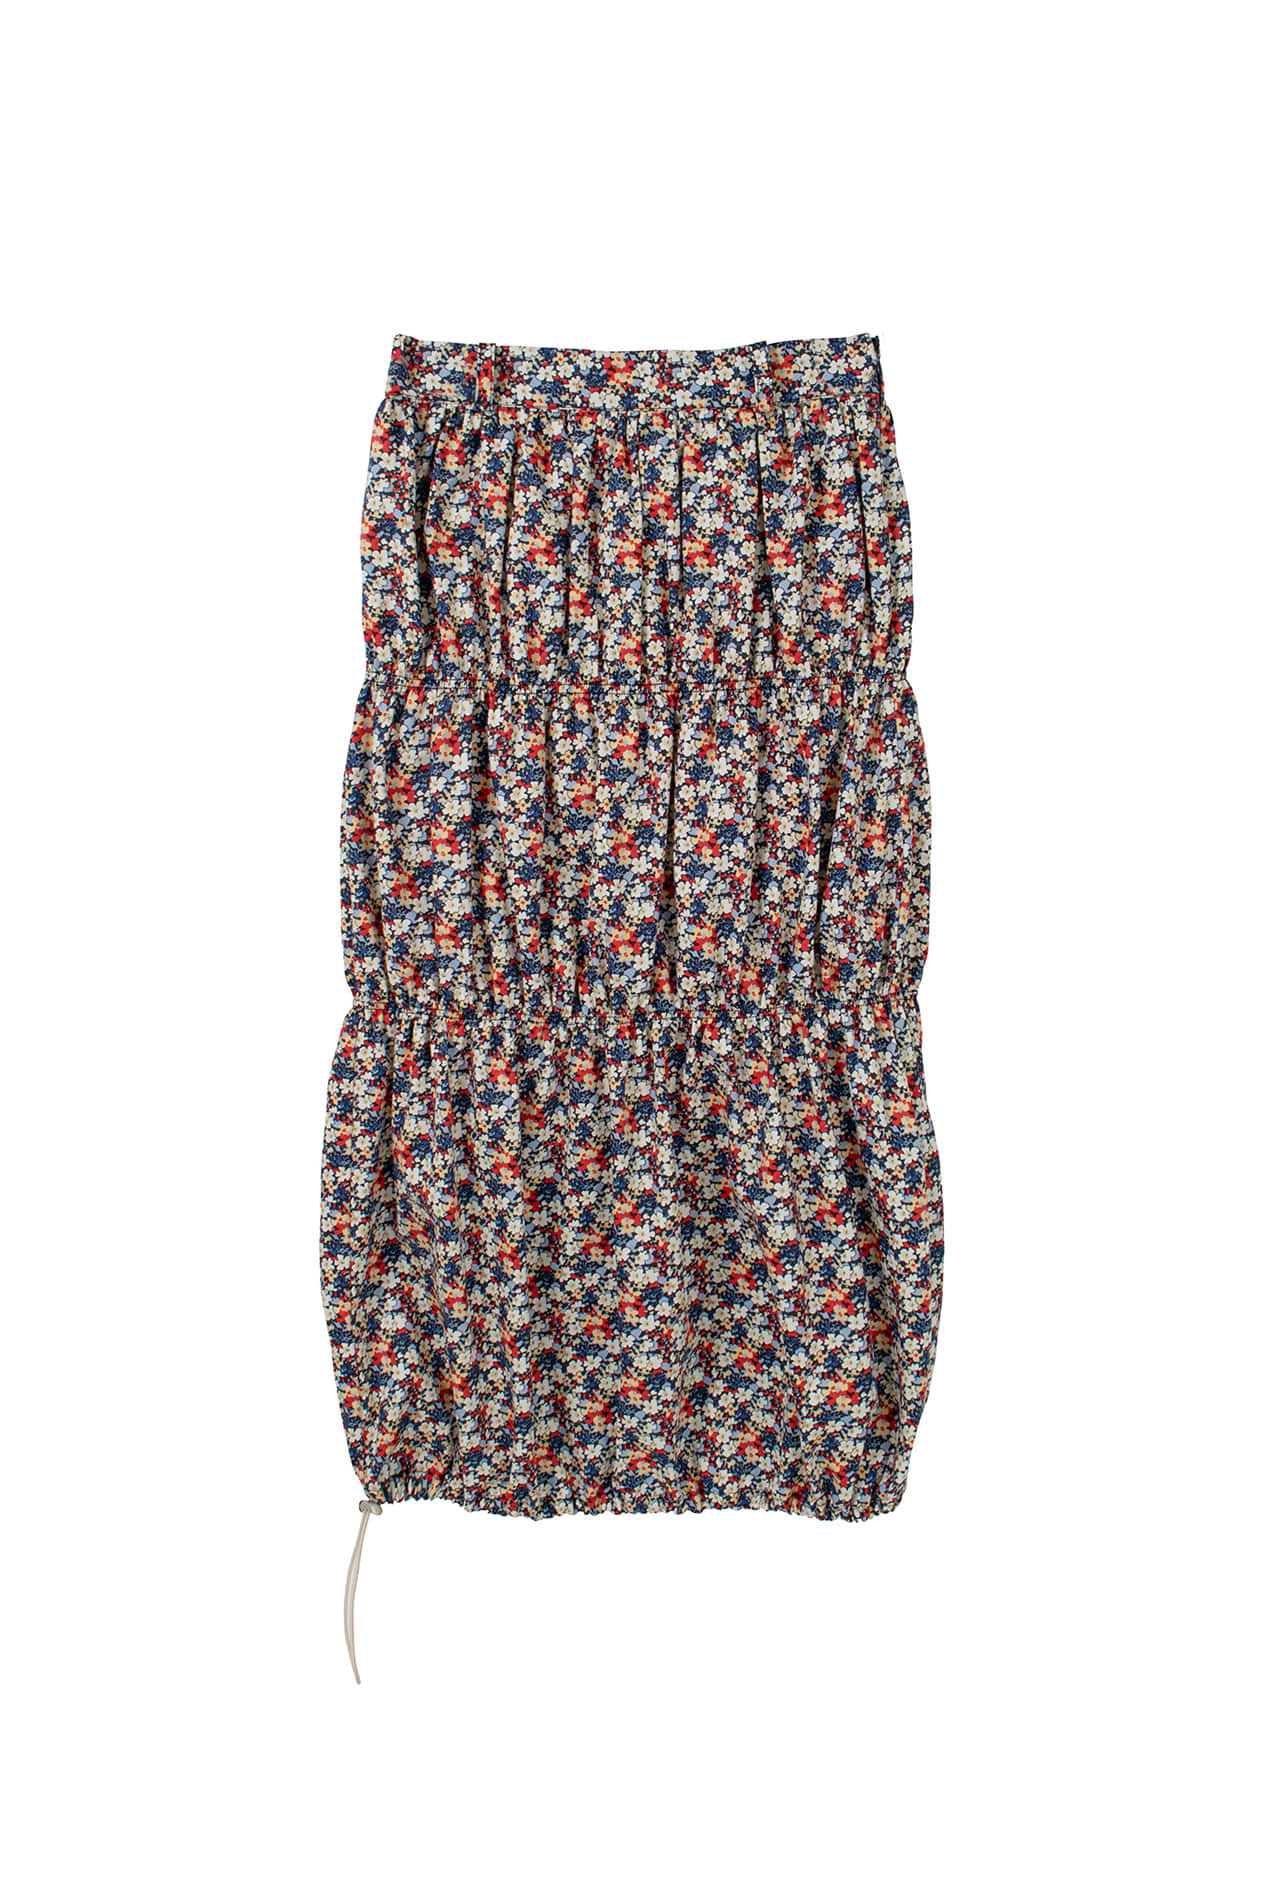 Zoey skirt (flower)